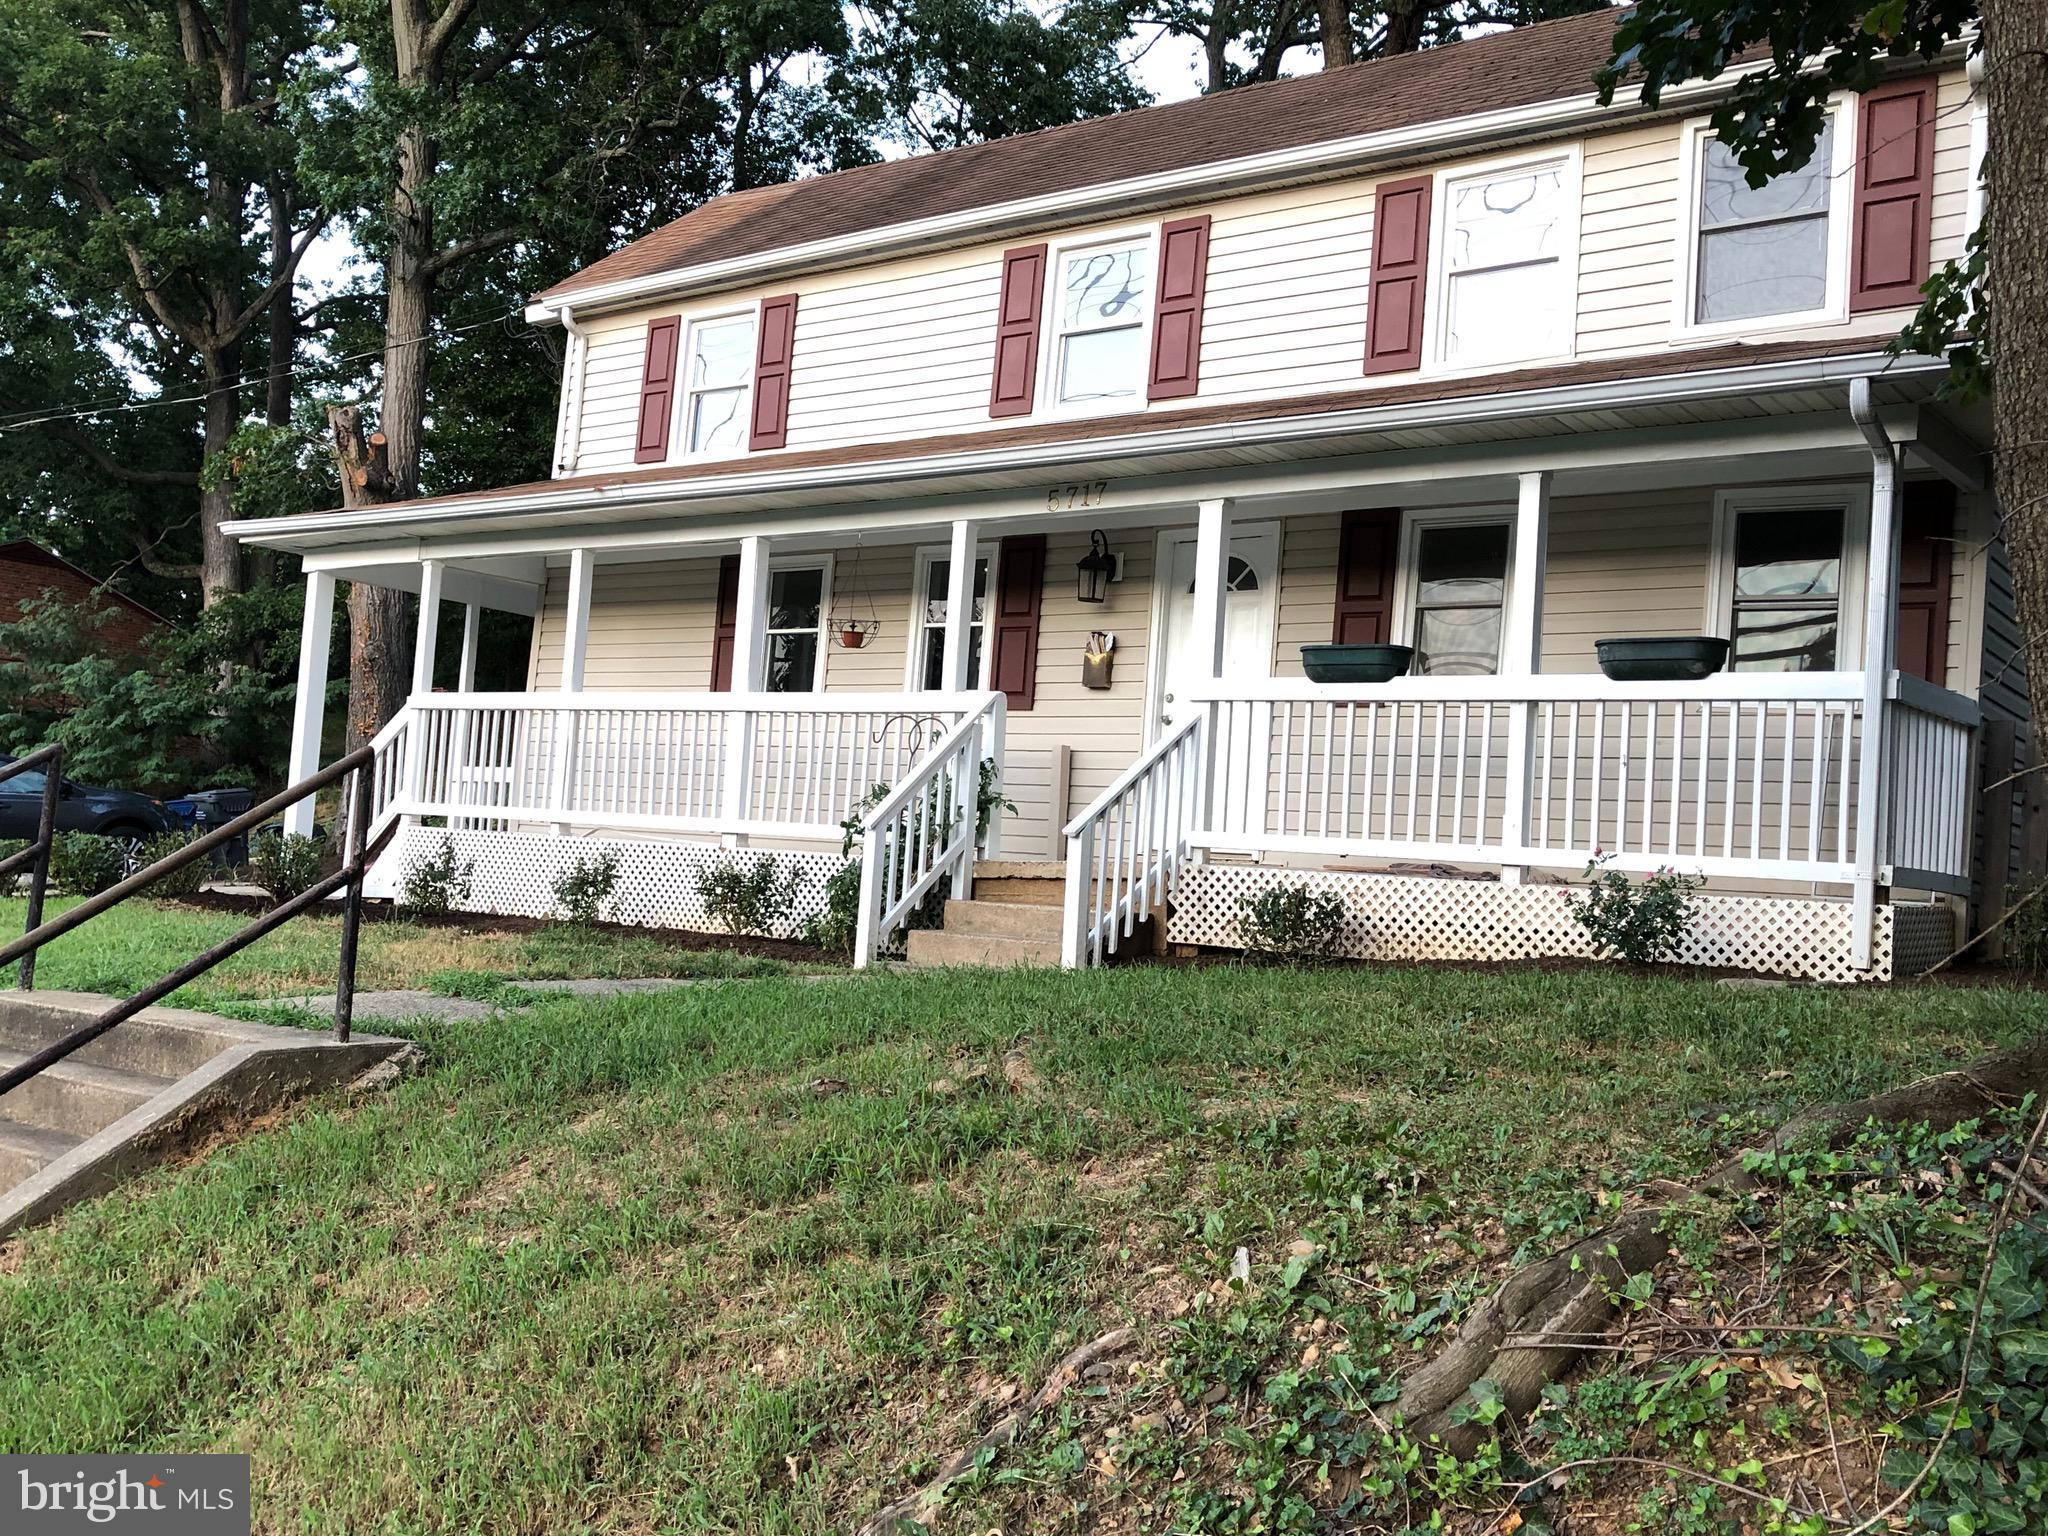 Location, Location, Location!4 bedrooms, 3 levels, SINGLE FAMILY HOME with front porch - just minutes to the heart of it all and priced to SELL!!        Walk to Metro, mins to Crystal City, Amazon HQ and National Harbor, Hop on 95/495 beltway in seconds, 5 mins to Old Town, 5 miles to Arlington, DC 8 Miles, Walk to the grocery store or stroll to the park, just minutes to major retail shops, restaurants, urgent care, and much more!New Water Heater 2019!,New Sump Pump 2019!,New Flooring 2019!,New Insulation 2019! Professionally painted and Landscaped, space for your vegetable garden or flower beds!New Roof and HVAC and concrete driveway in 2015!Storage shed,Partial Unfinish basement fenced yard, bring your pet!Screaming  Value *** Don't miss this one ***See the house sold blocks away VAFX1056684